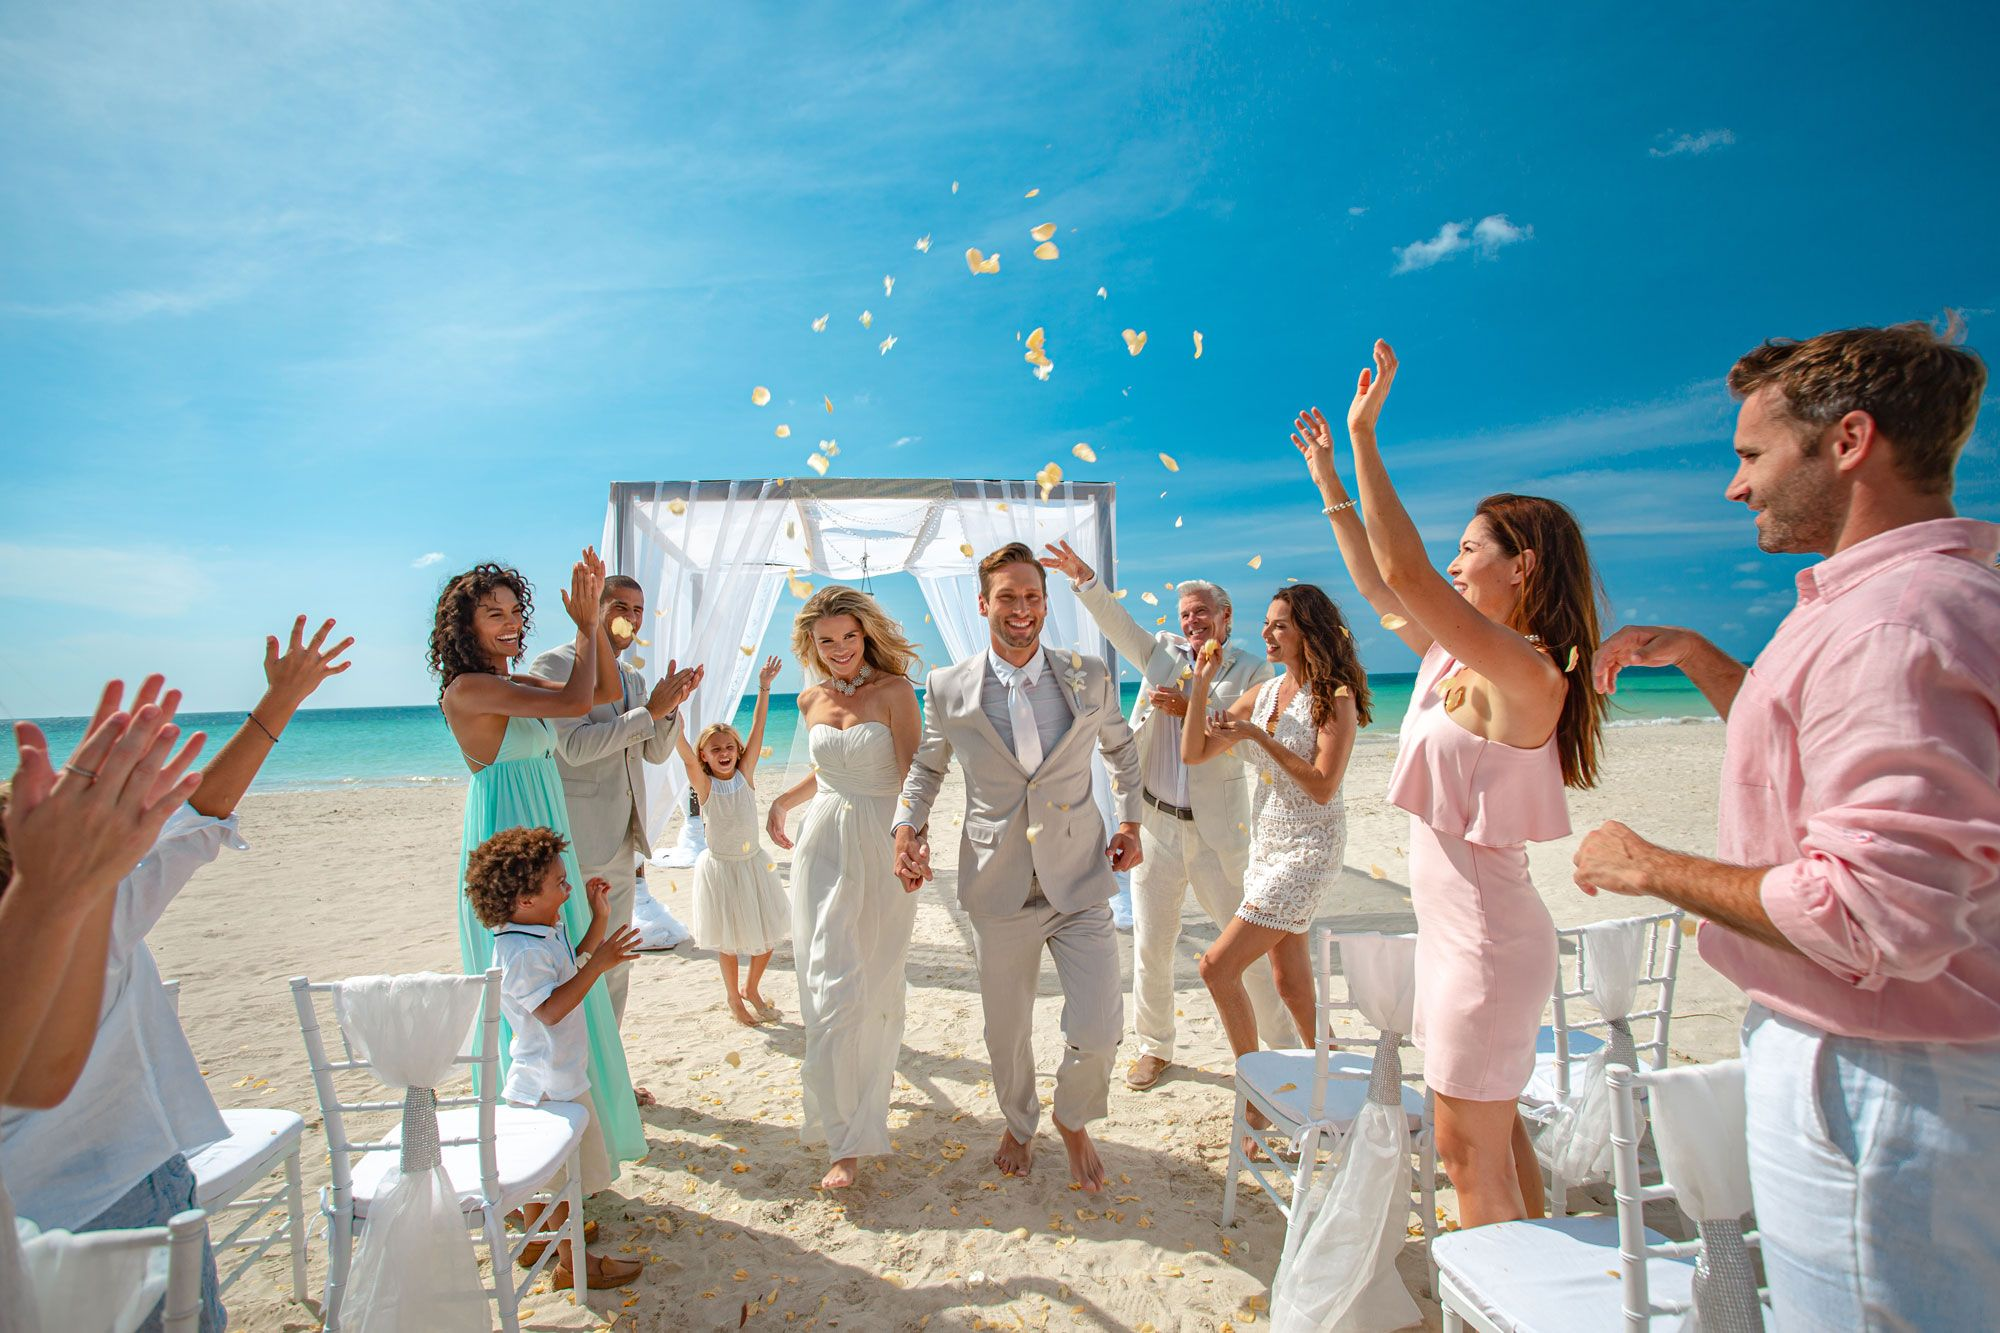 30+ Things To Consider When Planning a Beach Wedding